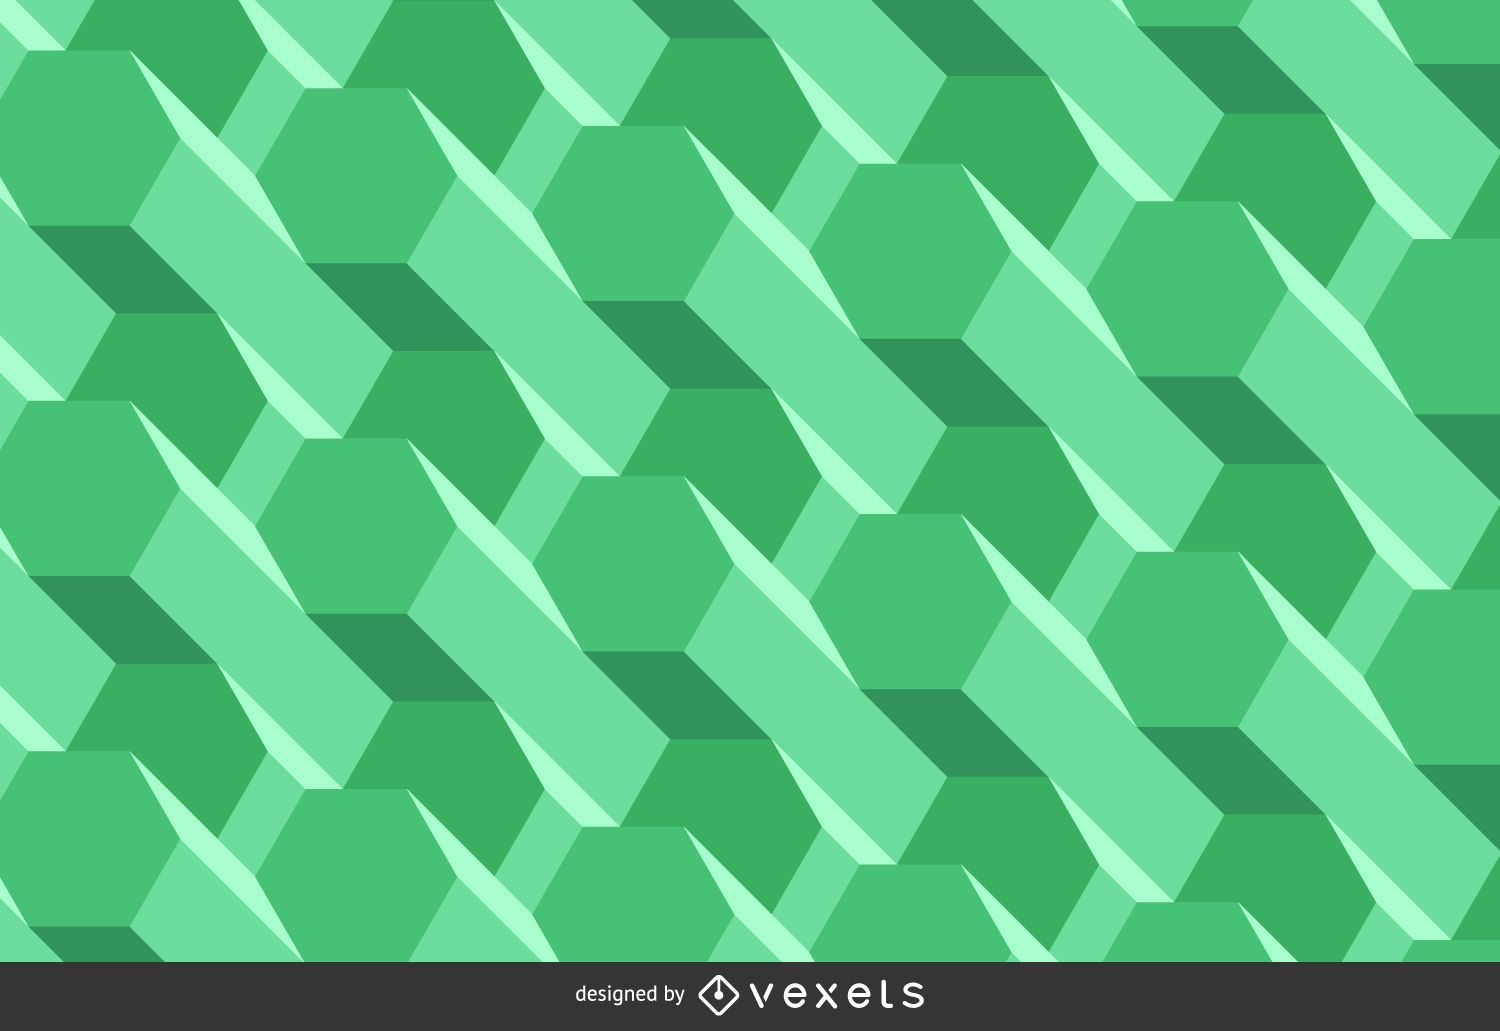 Vector Square Background Hd Vector Three Dimensional: Abstract Green Polygonal Background